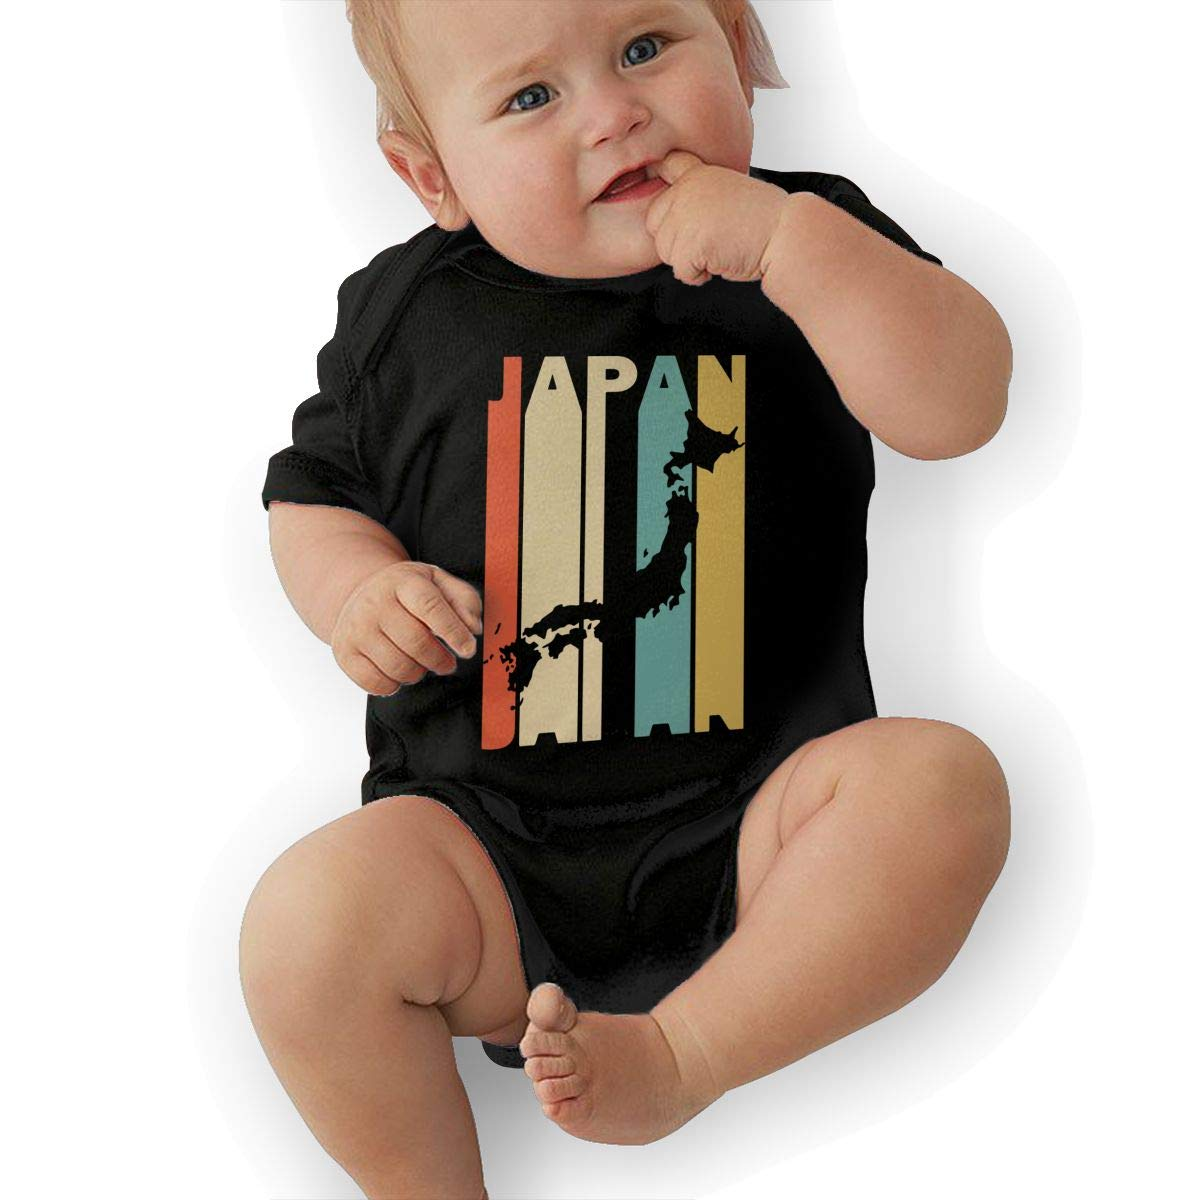 Cute Retro Style Japan Silhouette Onesies Short Sleeve Cotton Rompers for Baby Boys and Girls